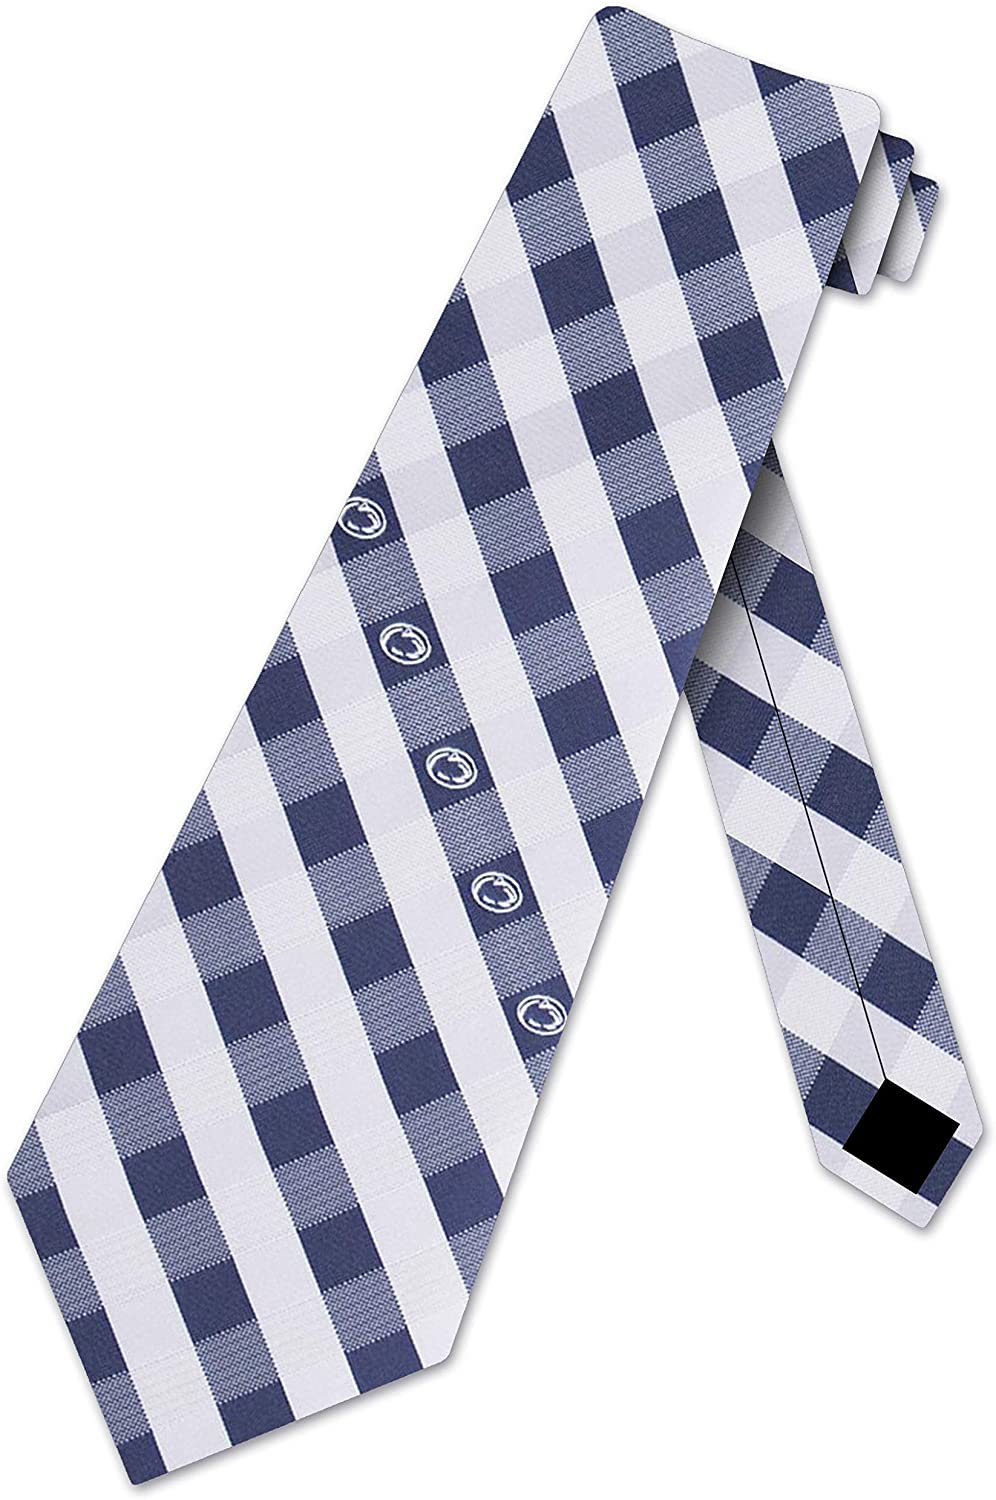 Penn State Nittany Lions NCAA College Check Poly Necktie Men's Sports Accessory Tie